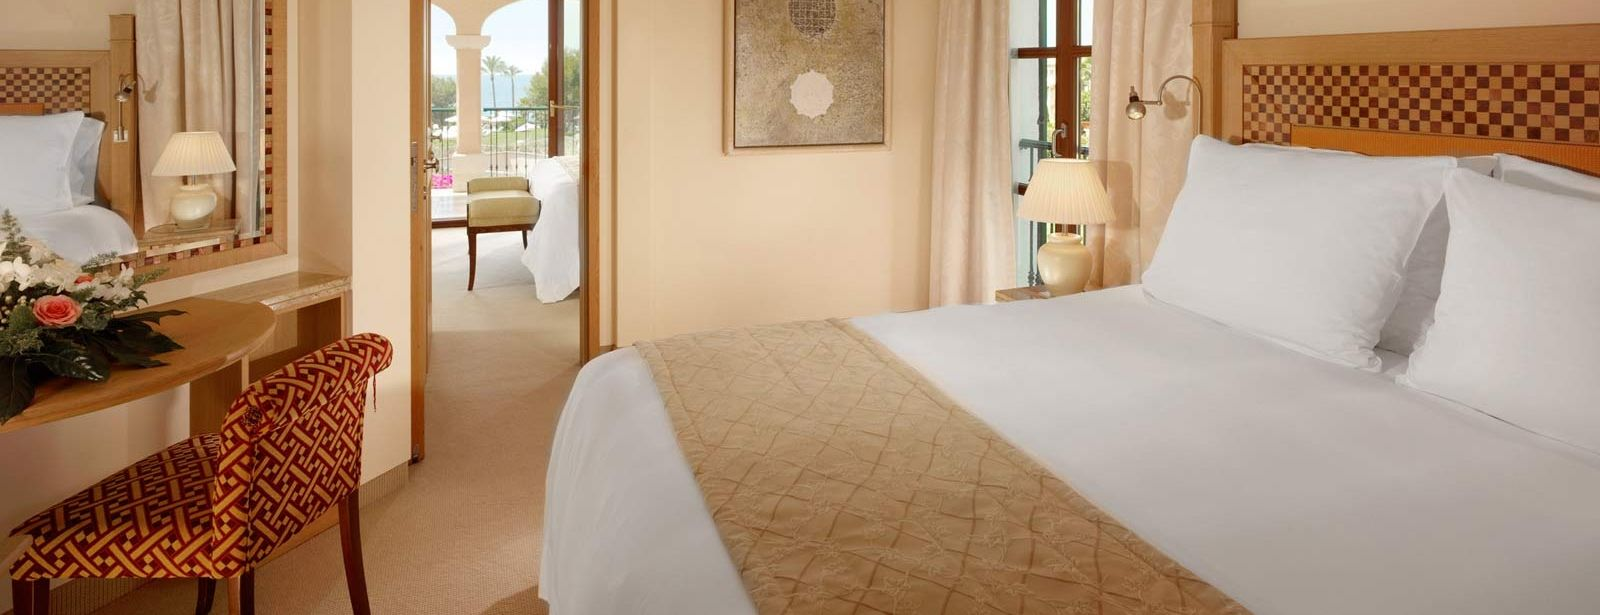 Ocean Two Suite |The St. Regis Mardavall Mallorca Resort